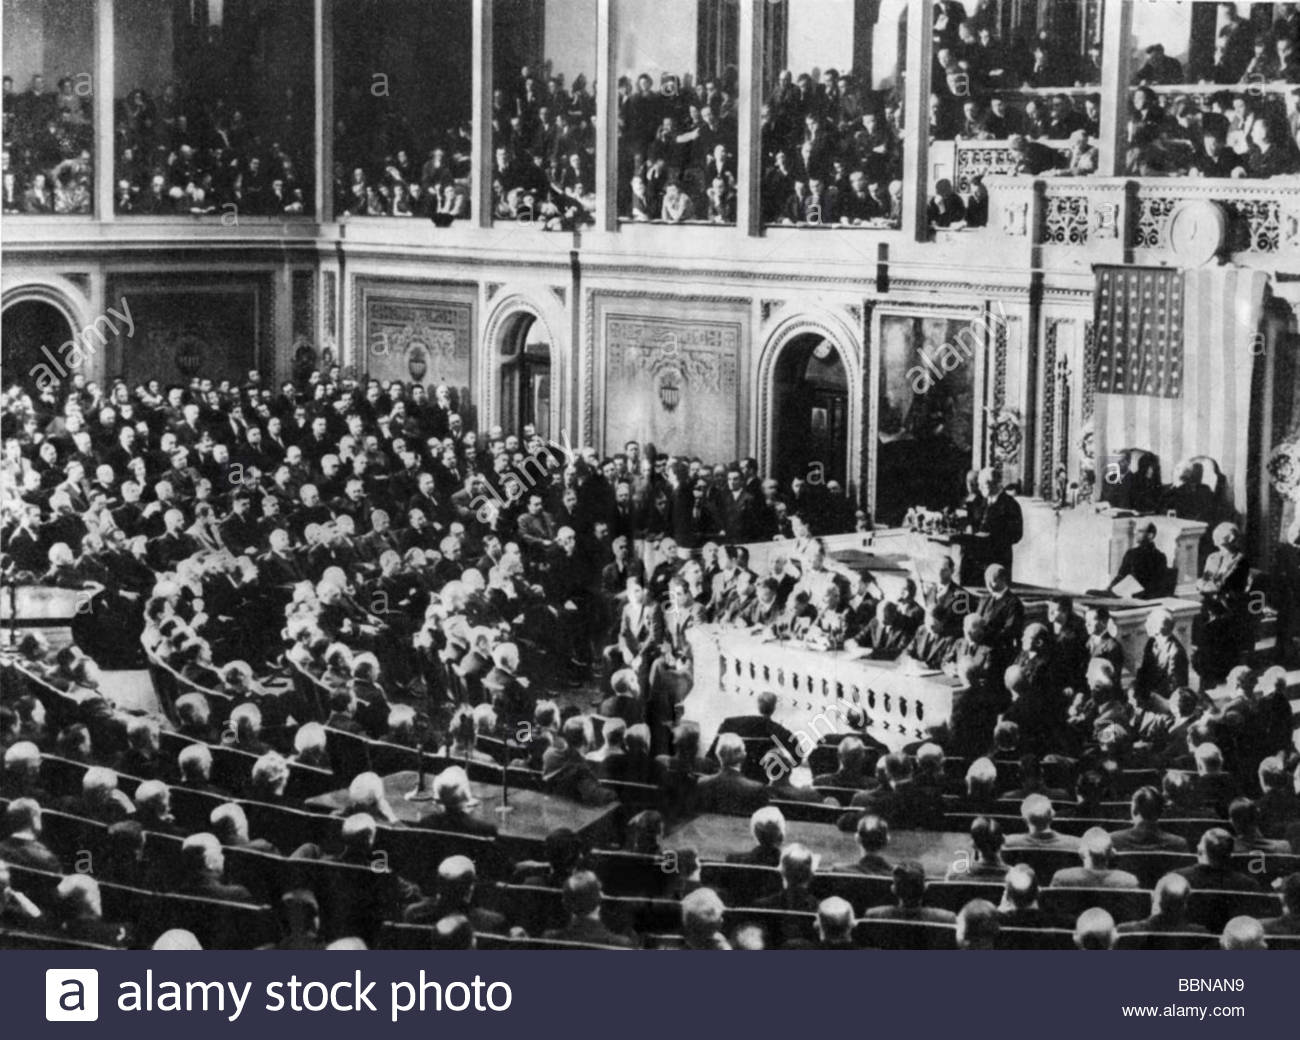 the events after the second world war The key events of world war ii, which lasted from 1939 to 1945 and was the largest and bloodiest war the world has ever known  also known as: wwii, second world war appeasement following world war i.